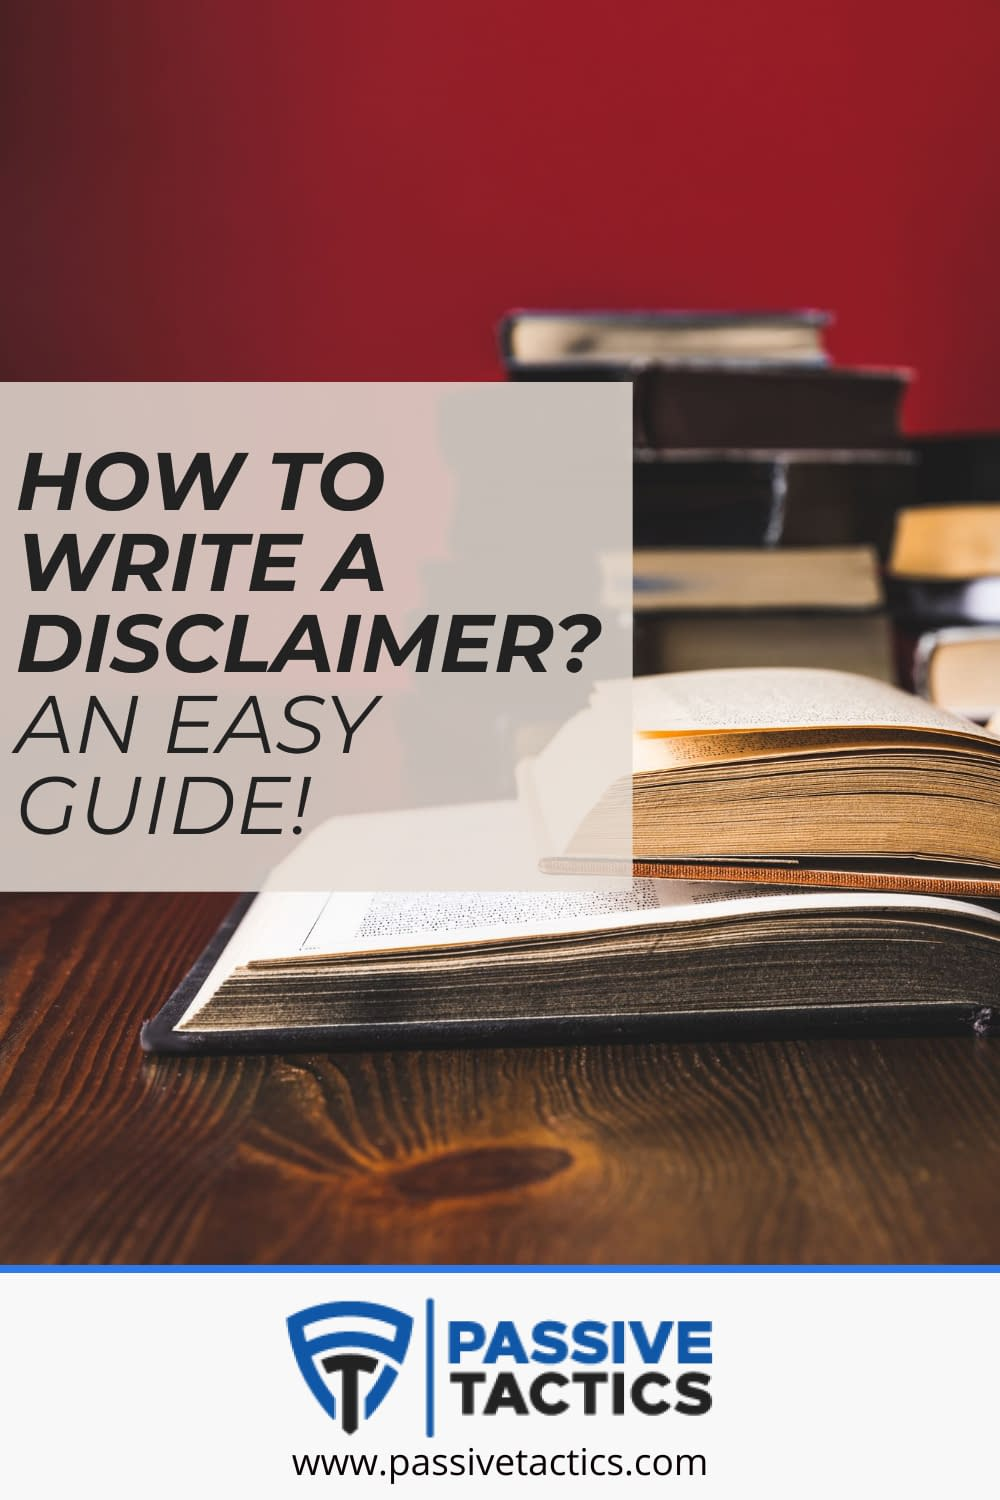 How To Write A Disclaimer? An Easy Guide!